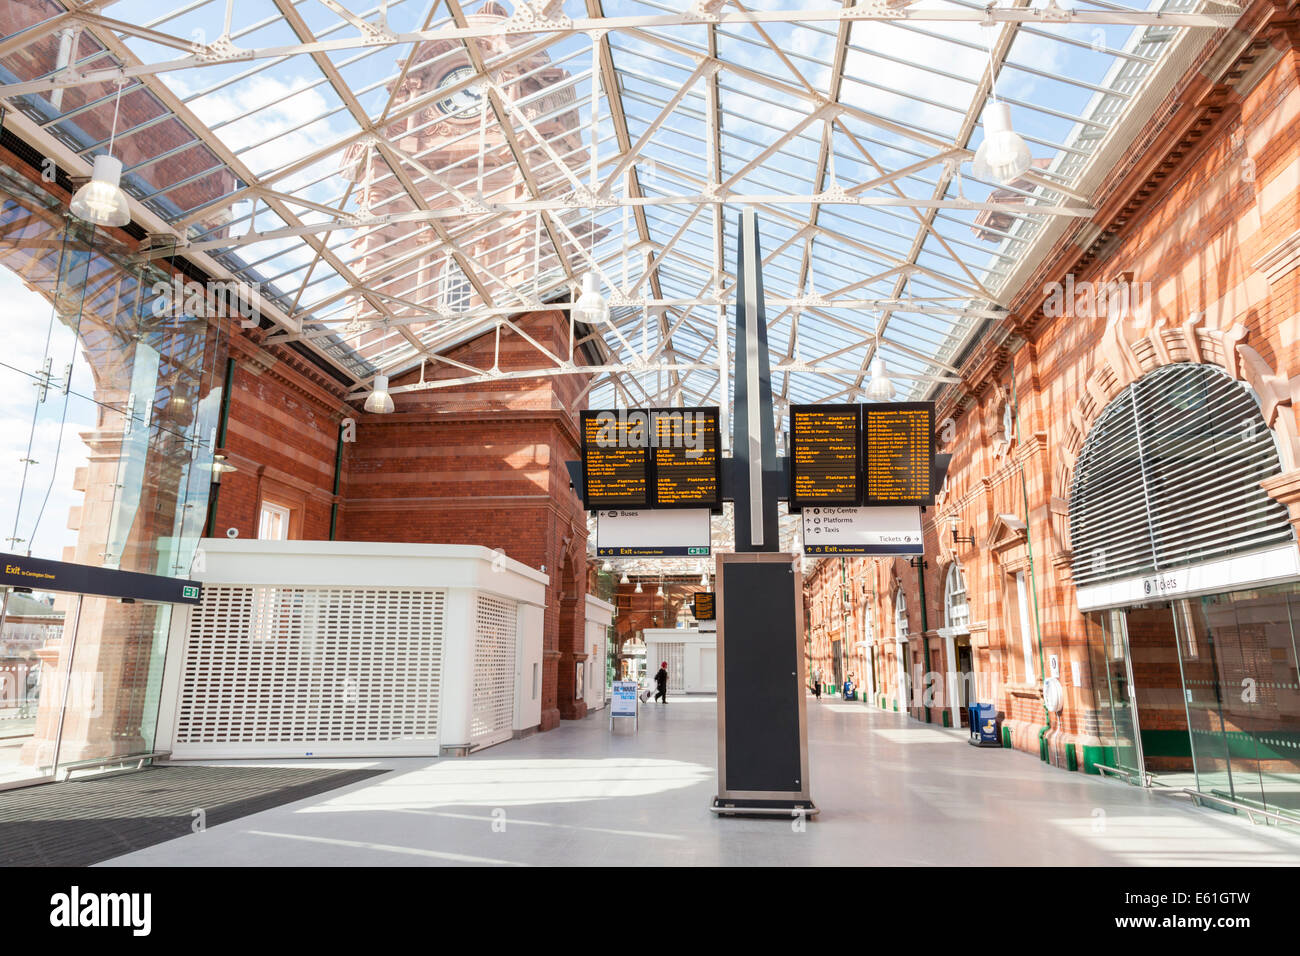 Interior of Nottingham Railway Station, concourse and glass roof, after the redevelopment ending March 2014, Nottingham, - Stock Image